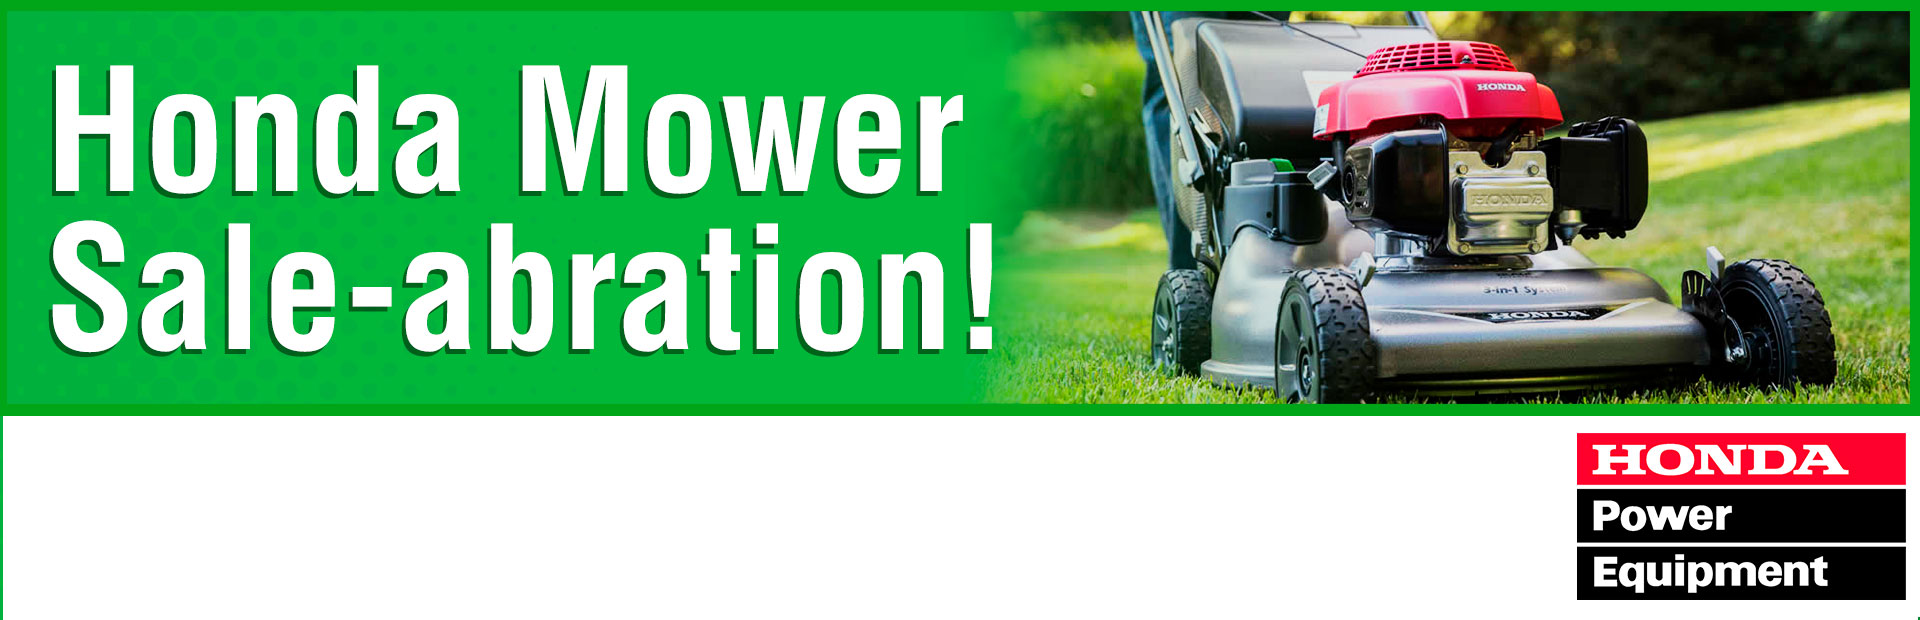 Mower Sale-abration!